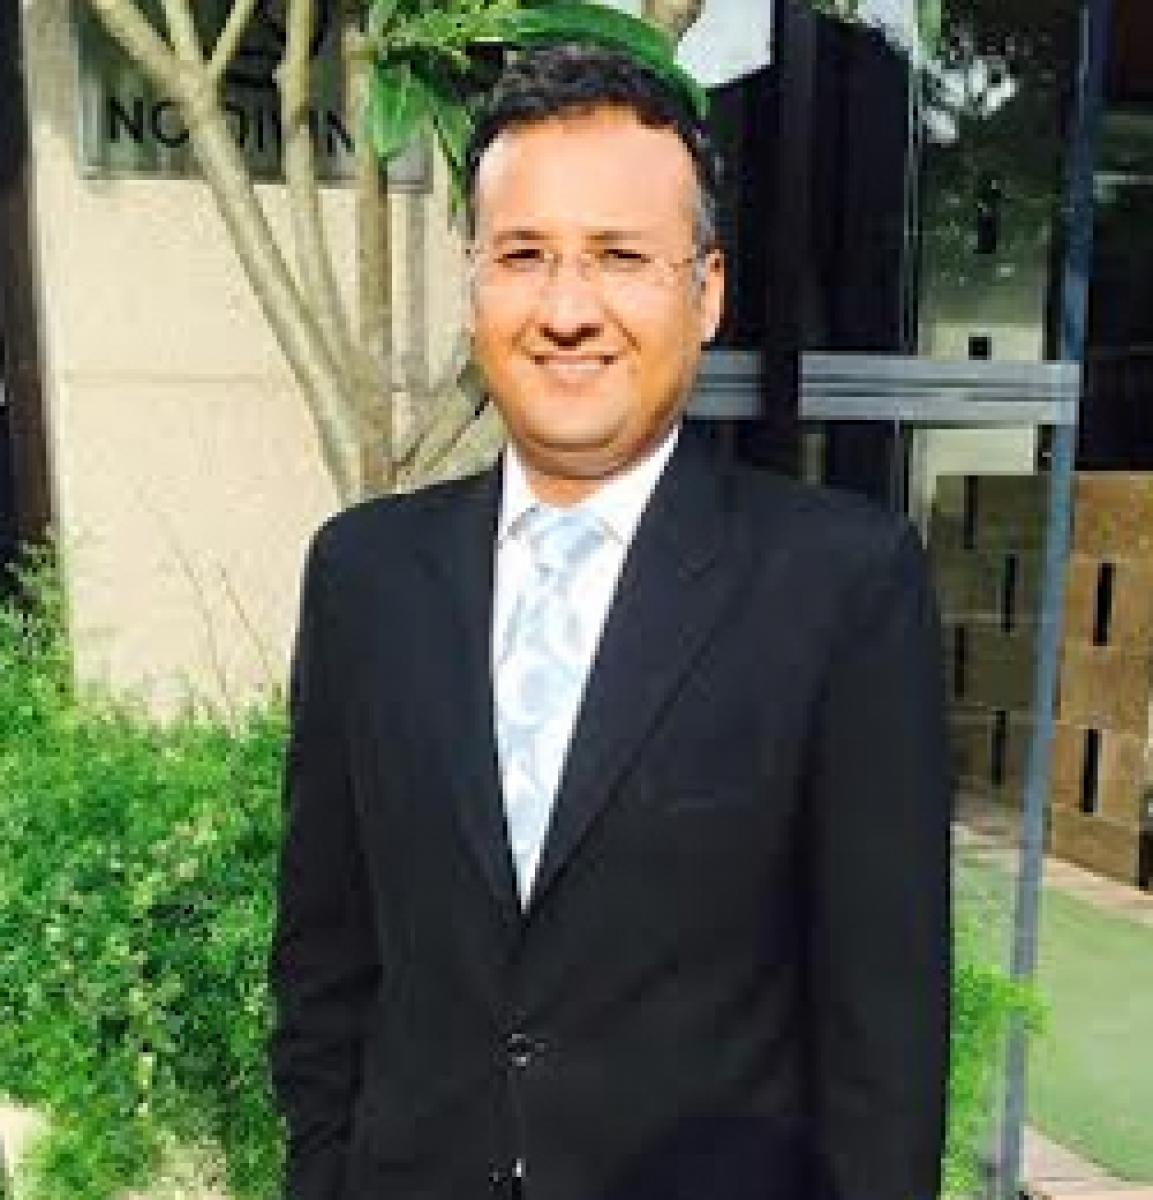 Le Meridien Gurgaon announces Bhupinder Rawat as the new Director of Rooms